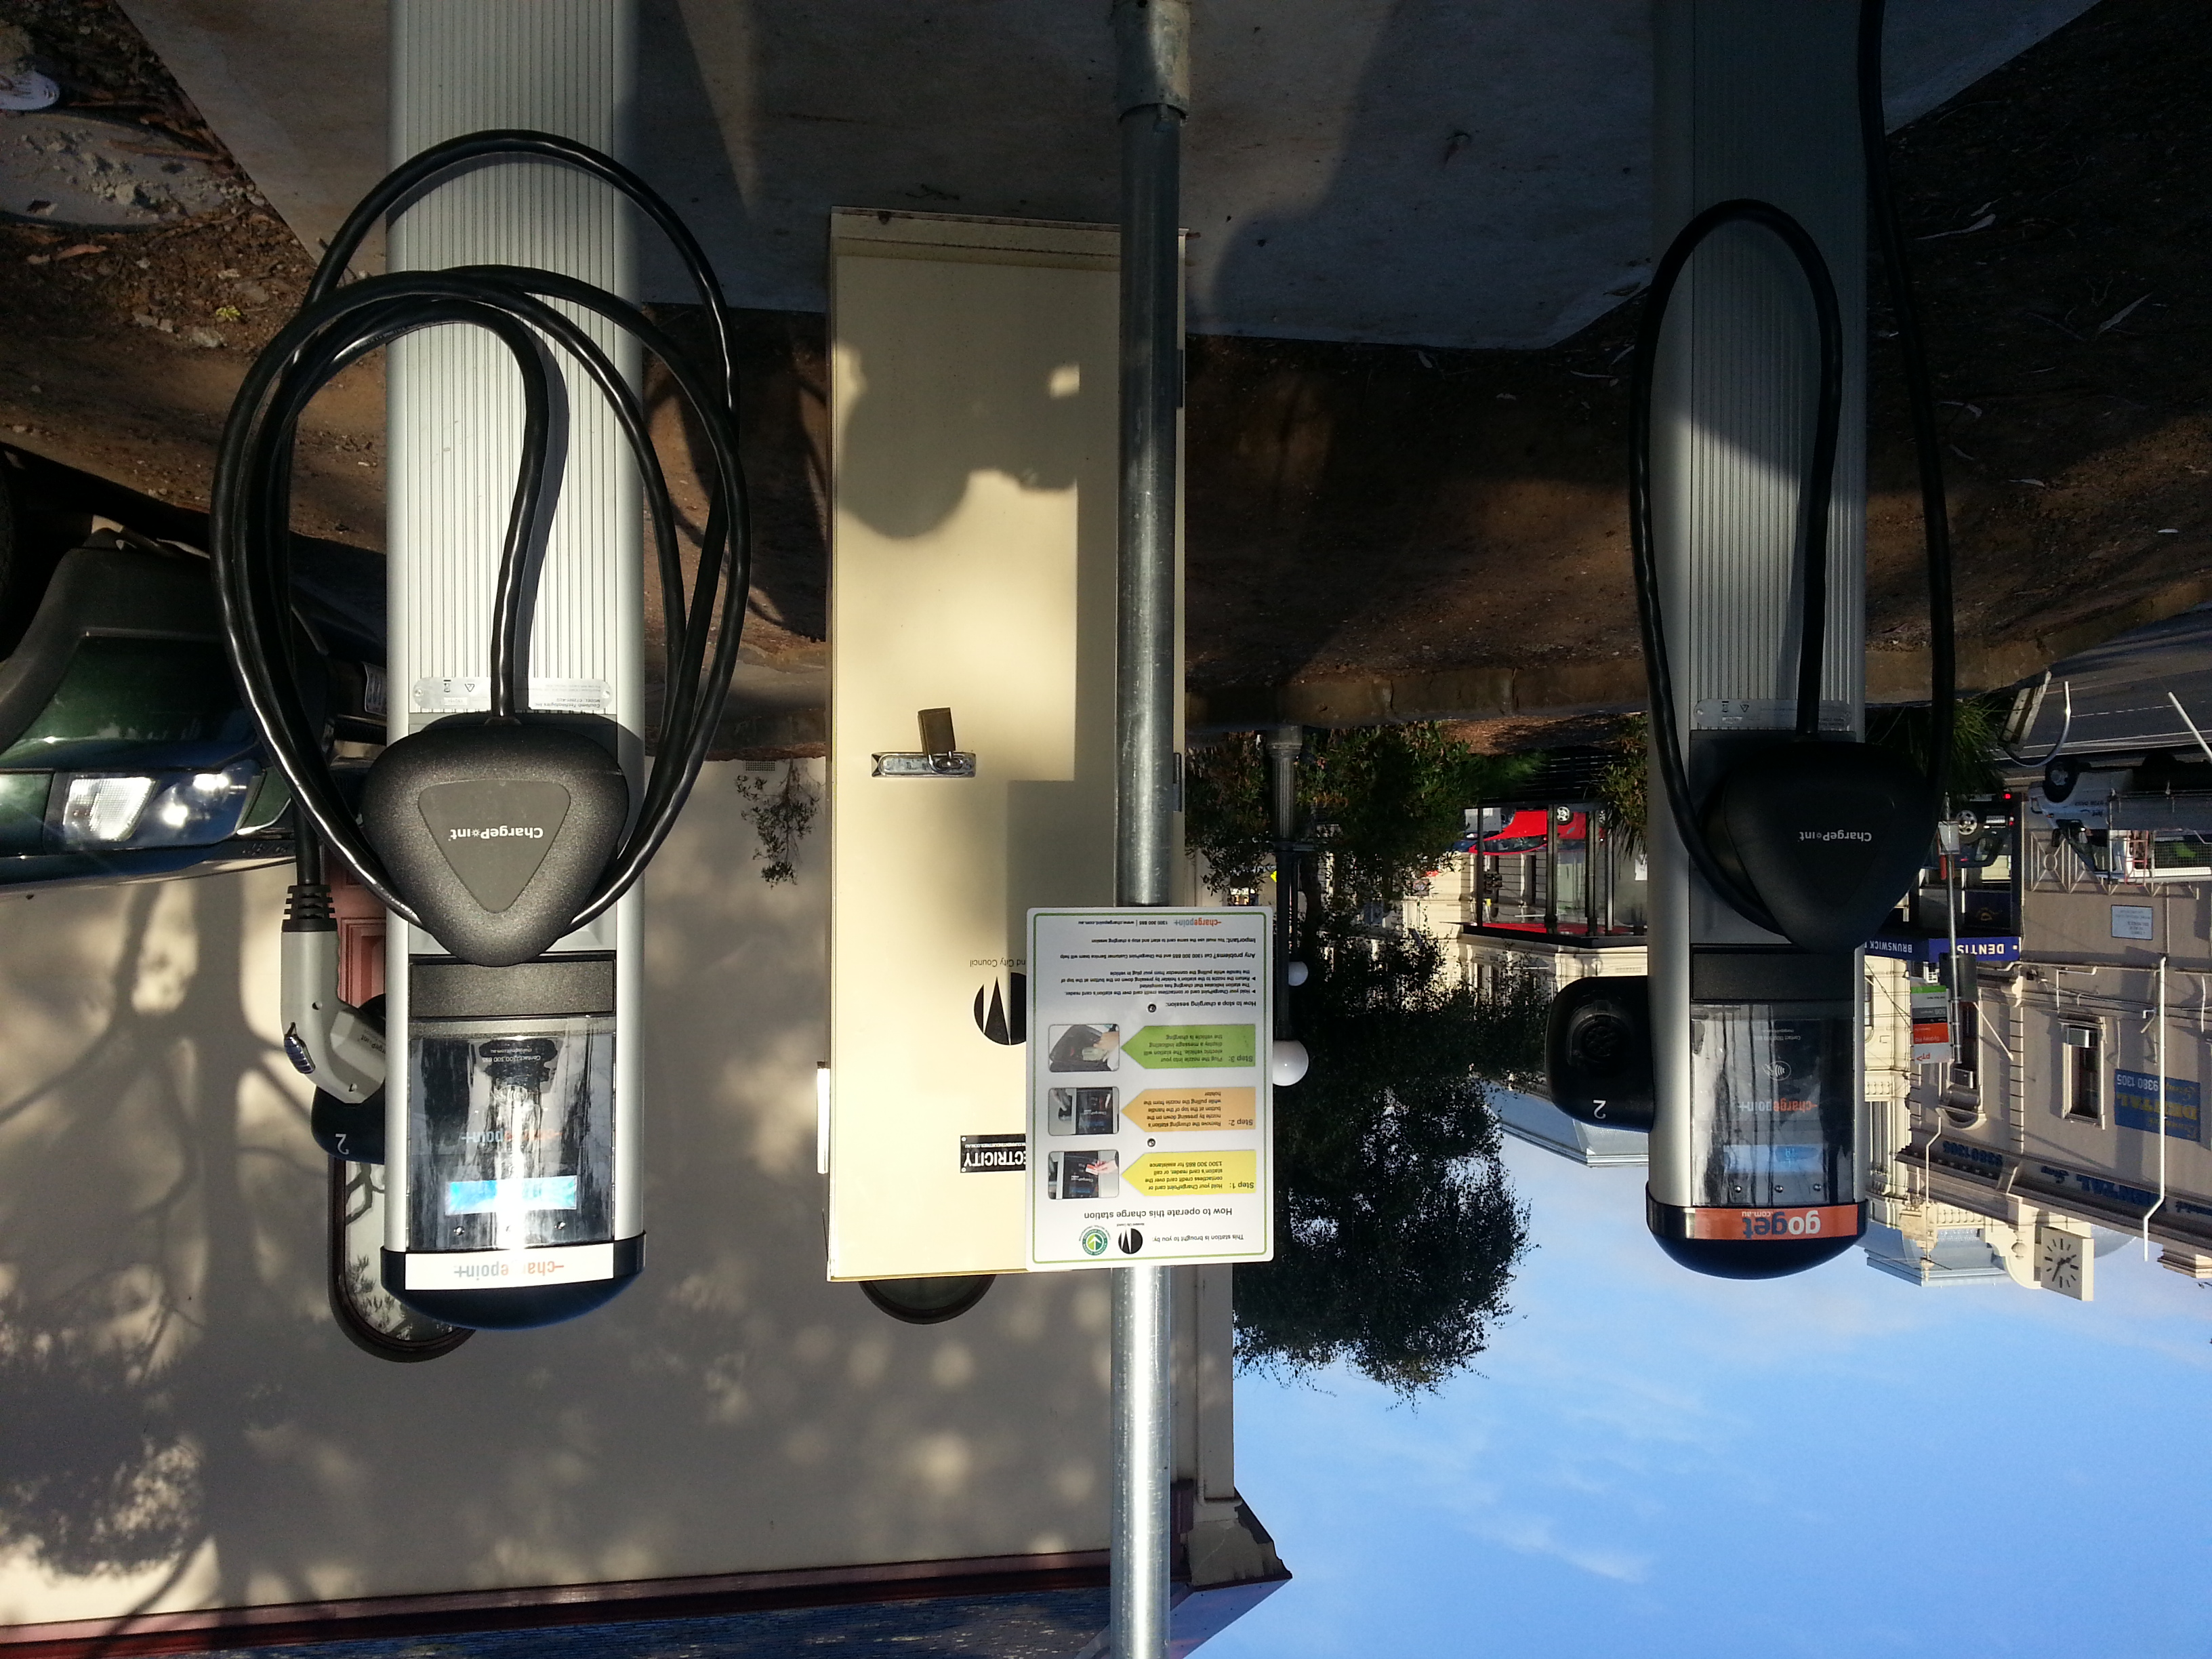 Chargepoint Chargers